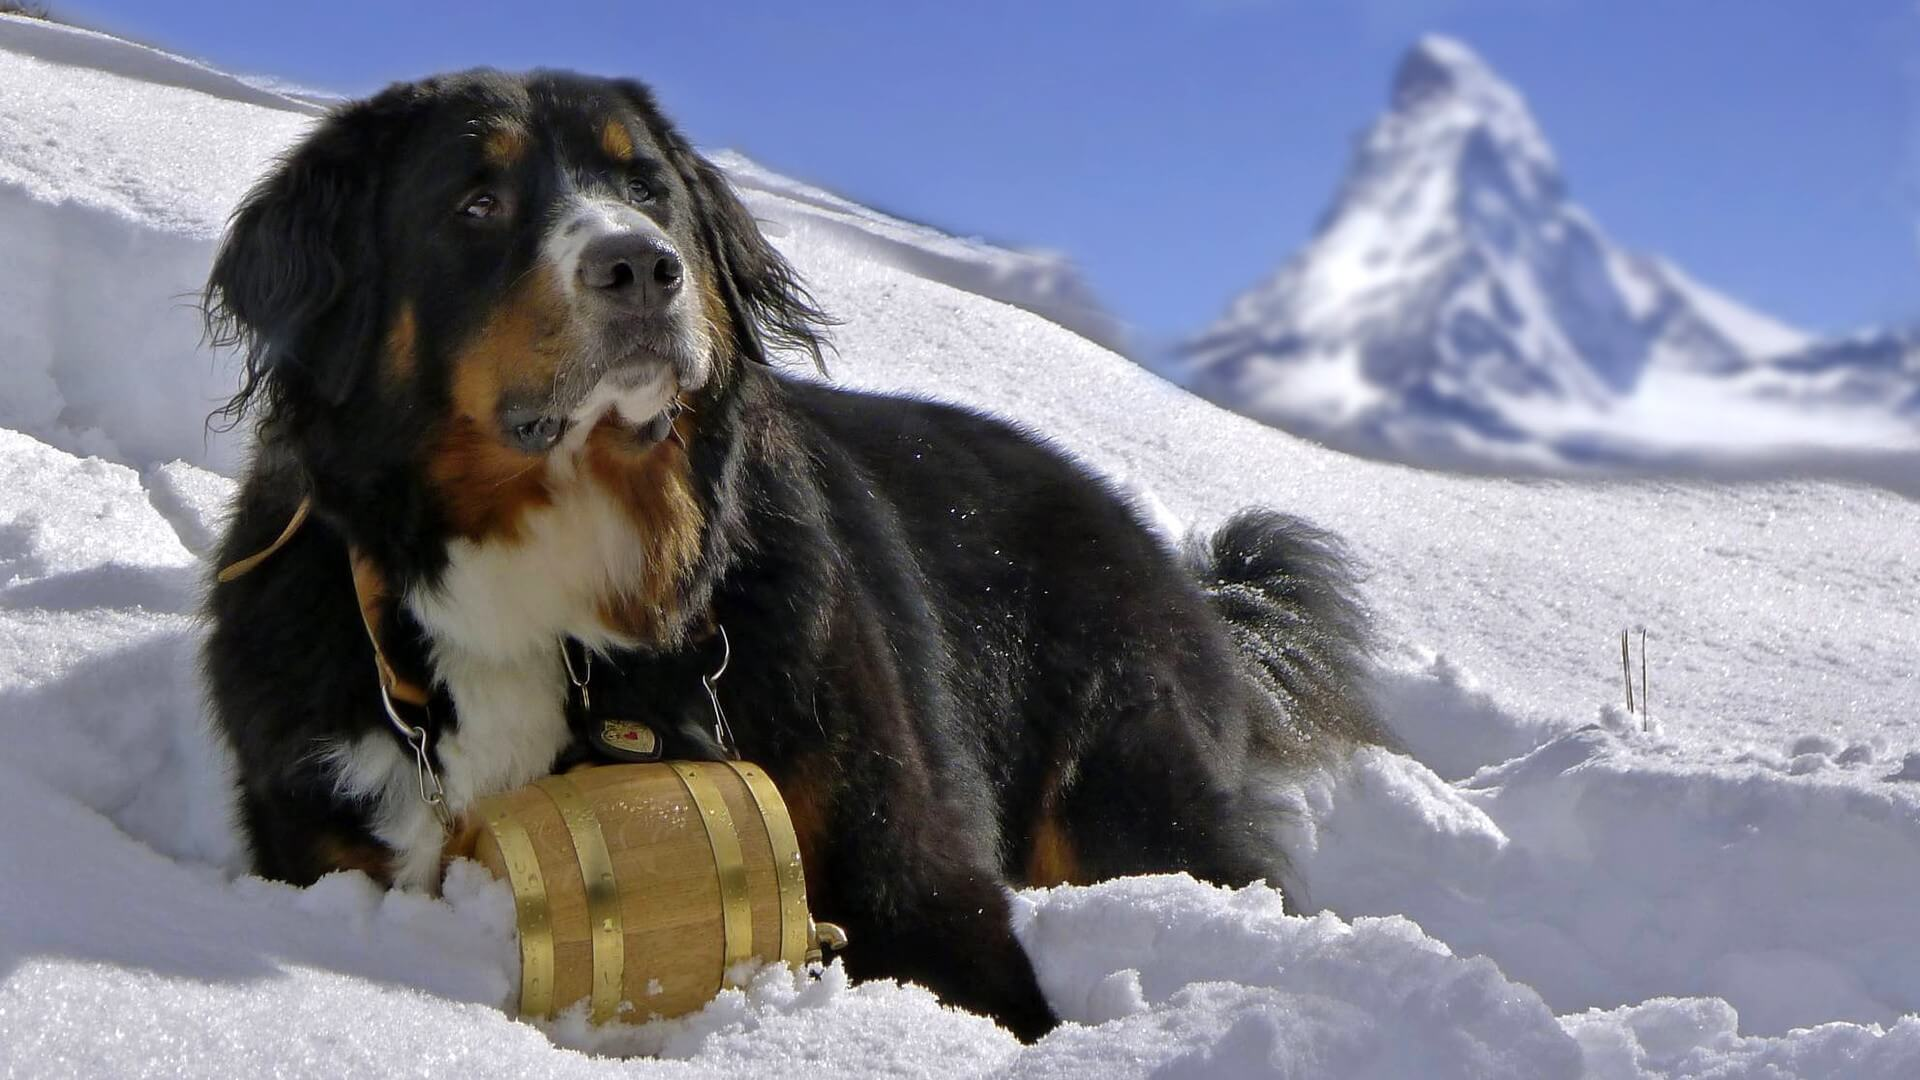 Bernese Mountain Dog in snow 1080p Widescreen wallpapers for laptop